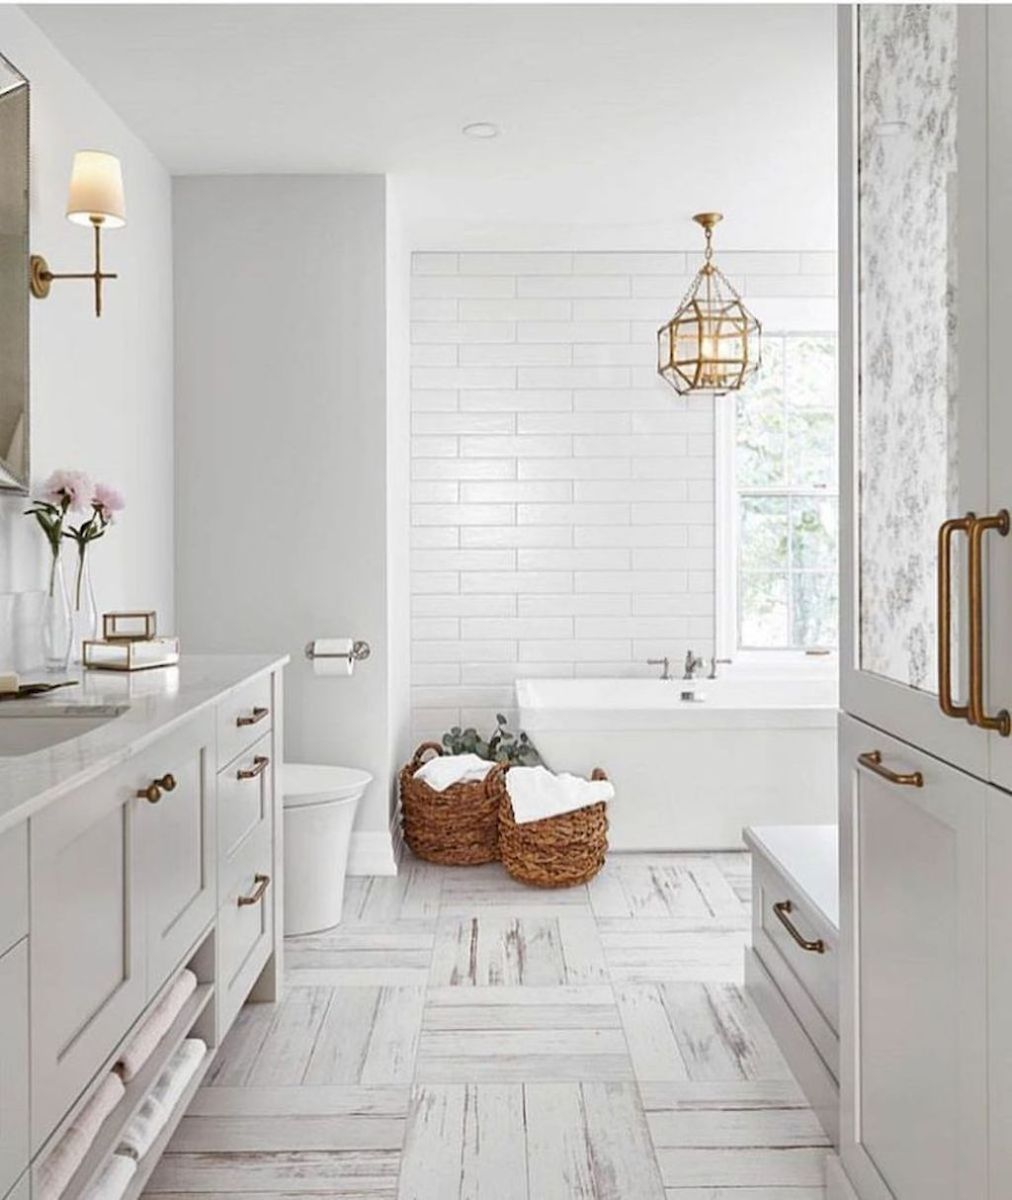 22 small master bathroom remodel ideas bathrooms remodel on best bathroom renovation ideas get your dream bathroom id=24468